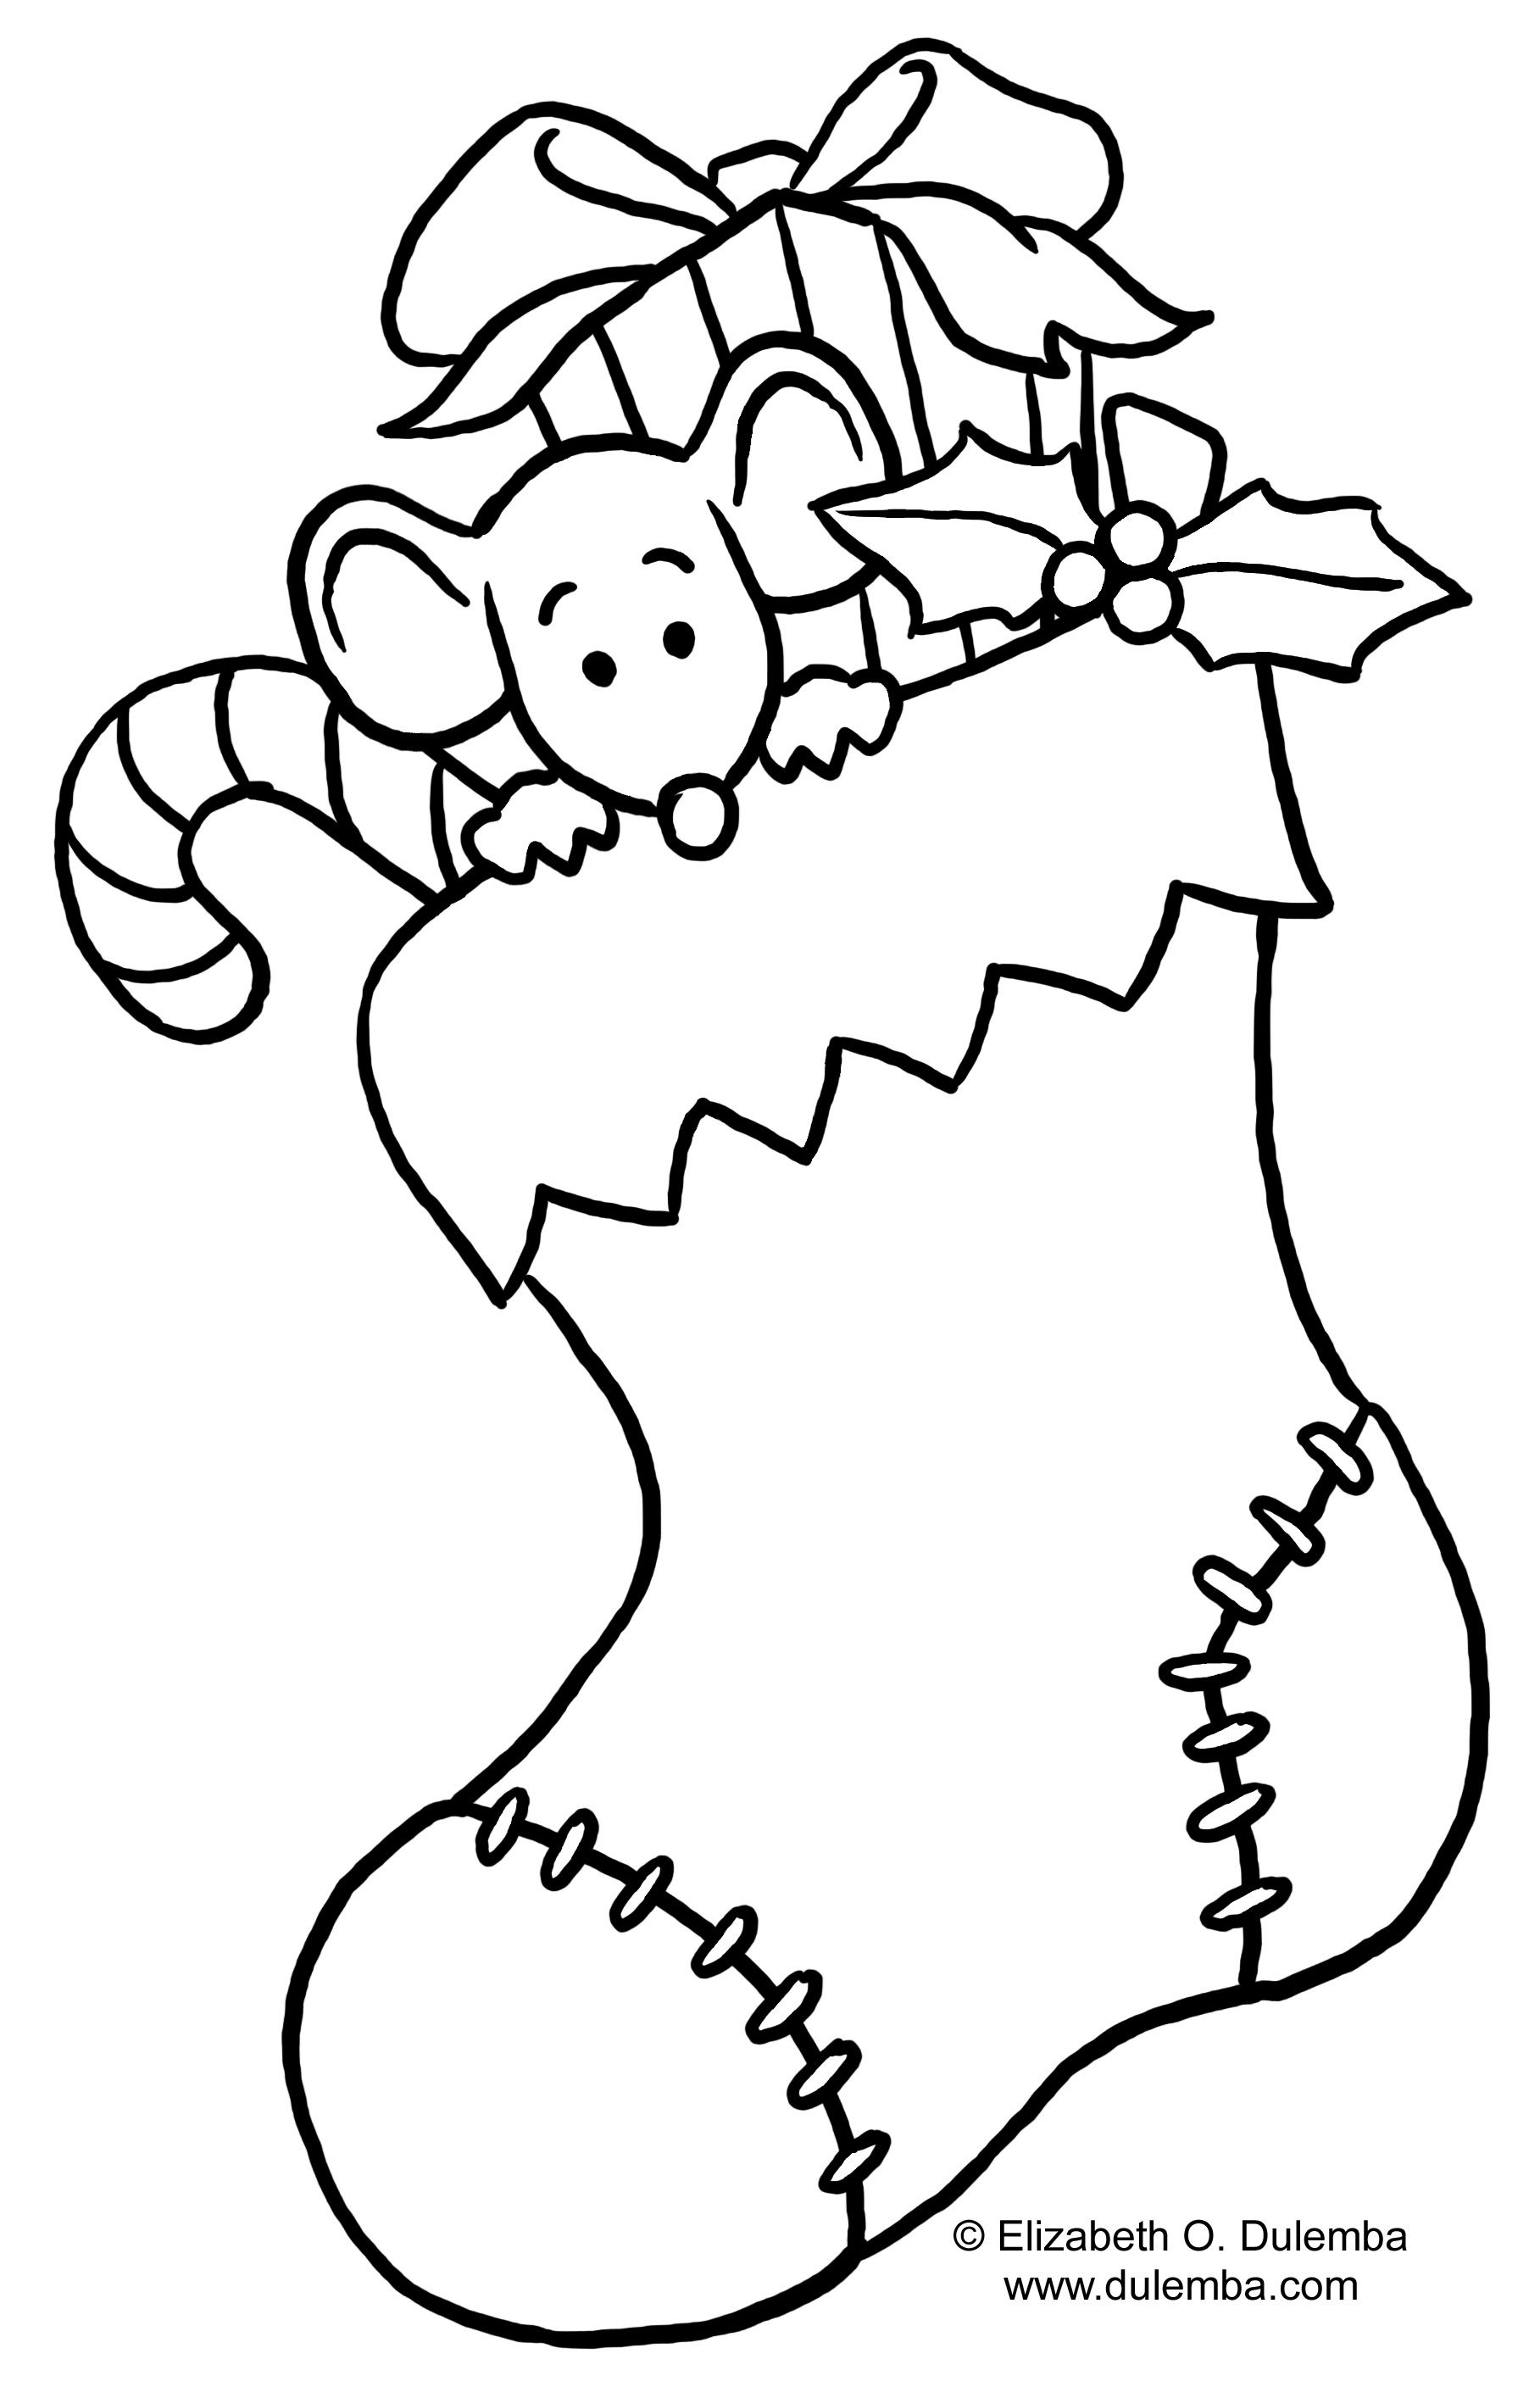 Christmas Coloring Pages Stocking With Http Www Justcoloring Com Images 13 Jpg